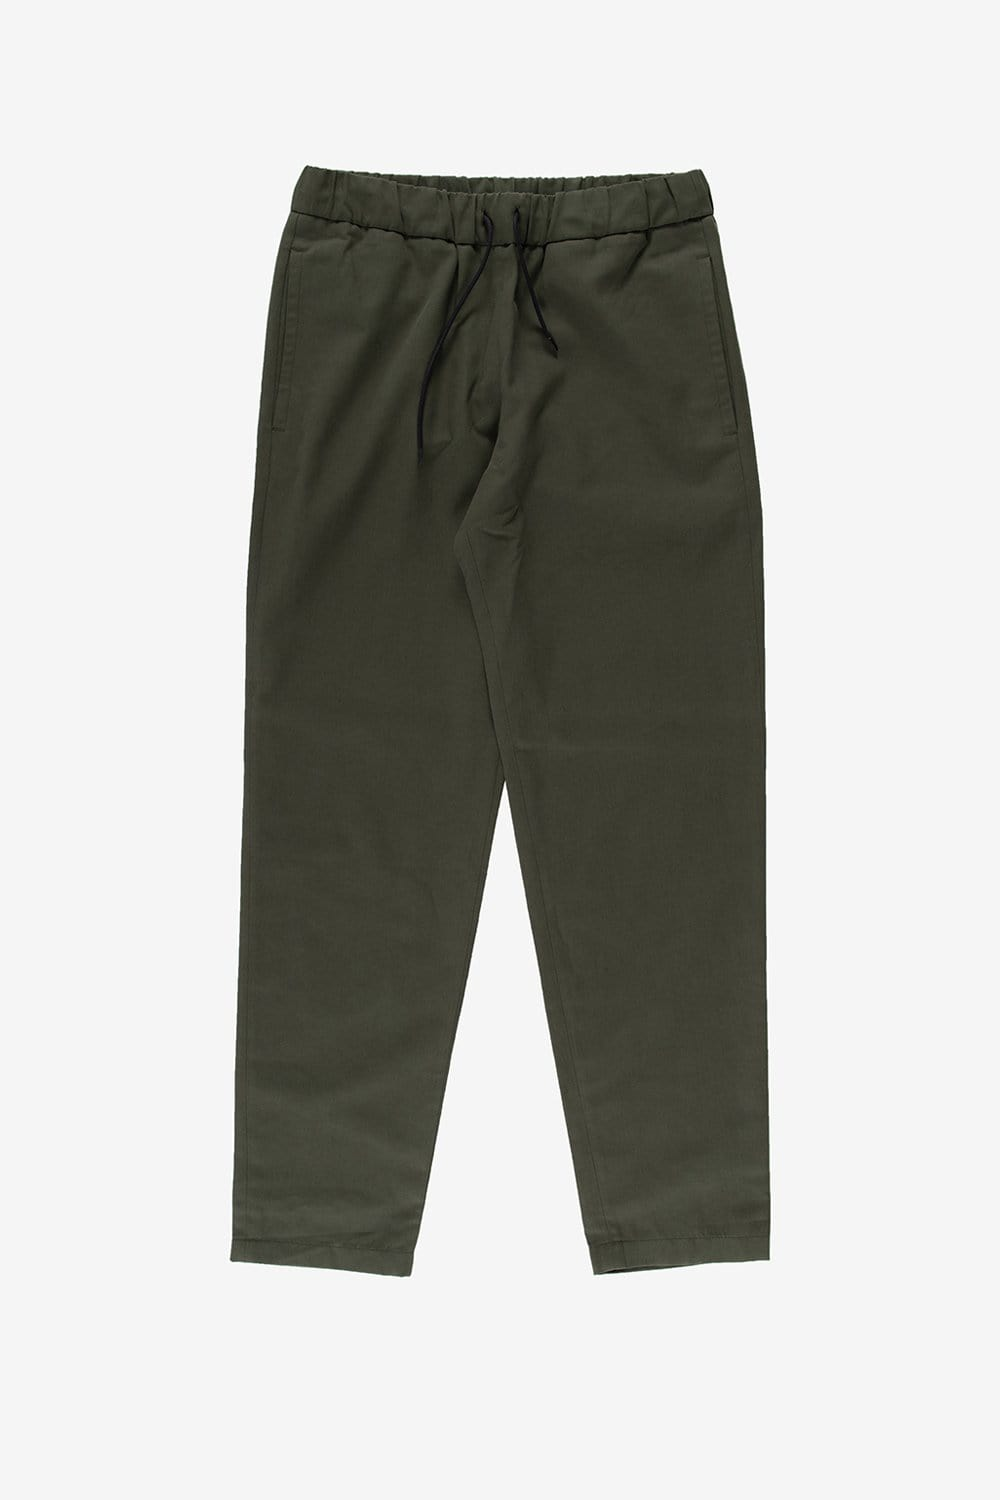 A.P.C. Apparel 50 Kaplan Trousers